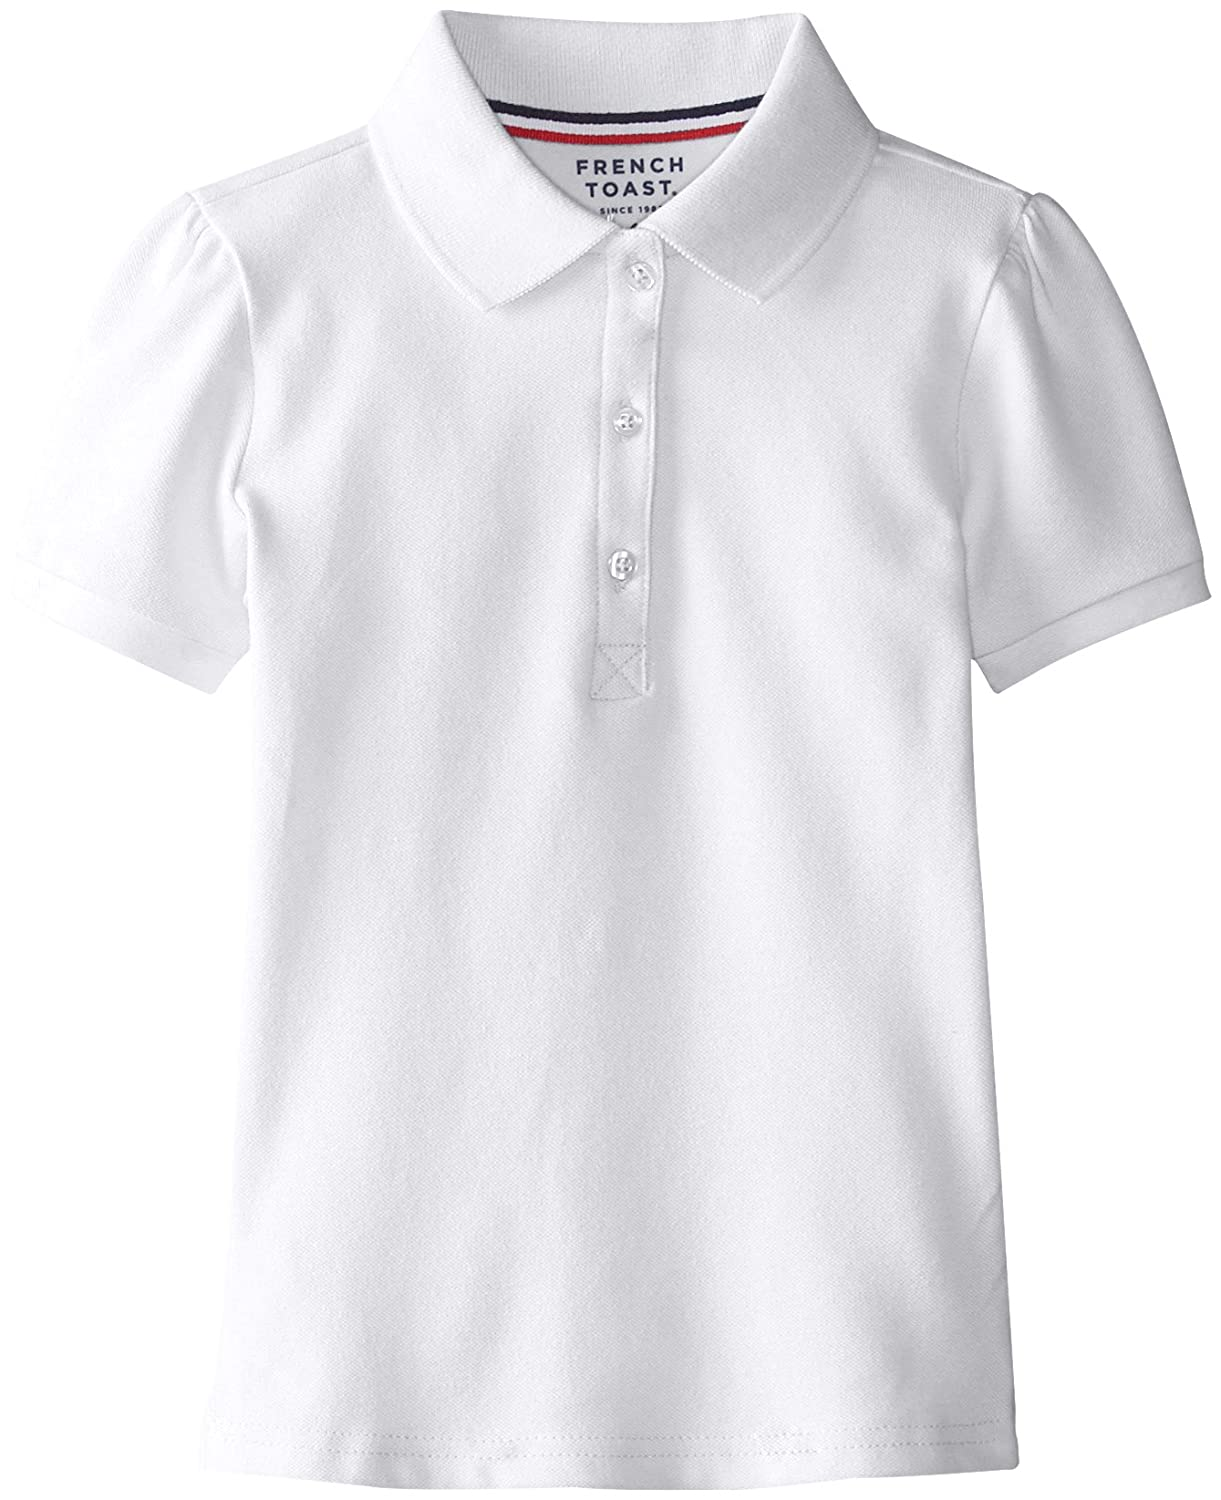 French Toast Little Girls' Short Sleeve Stretch Pique Polo, White, 4 1403B WHIT 4